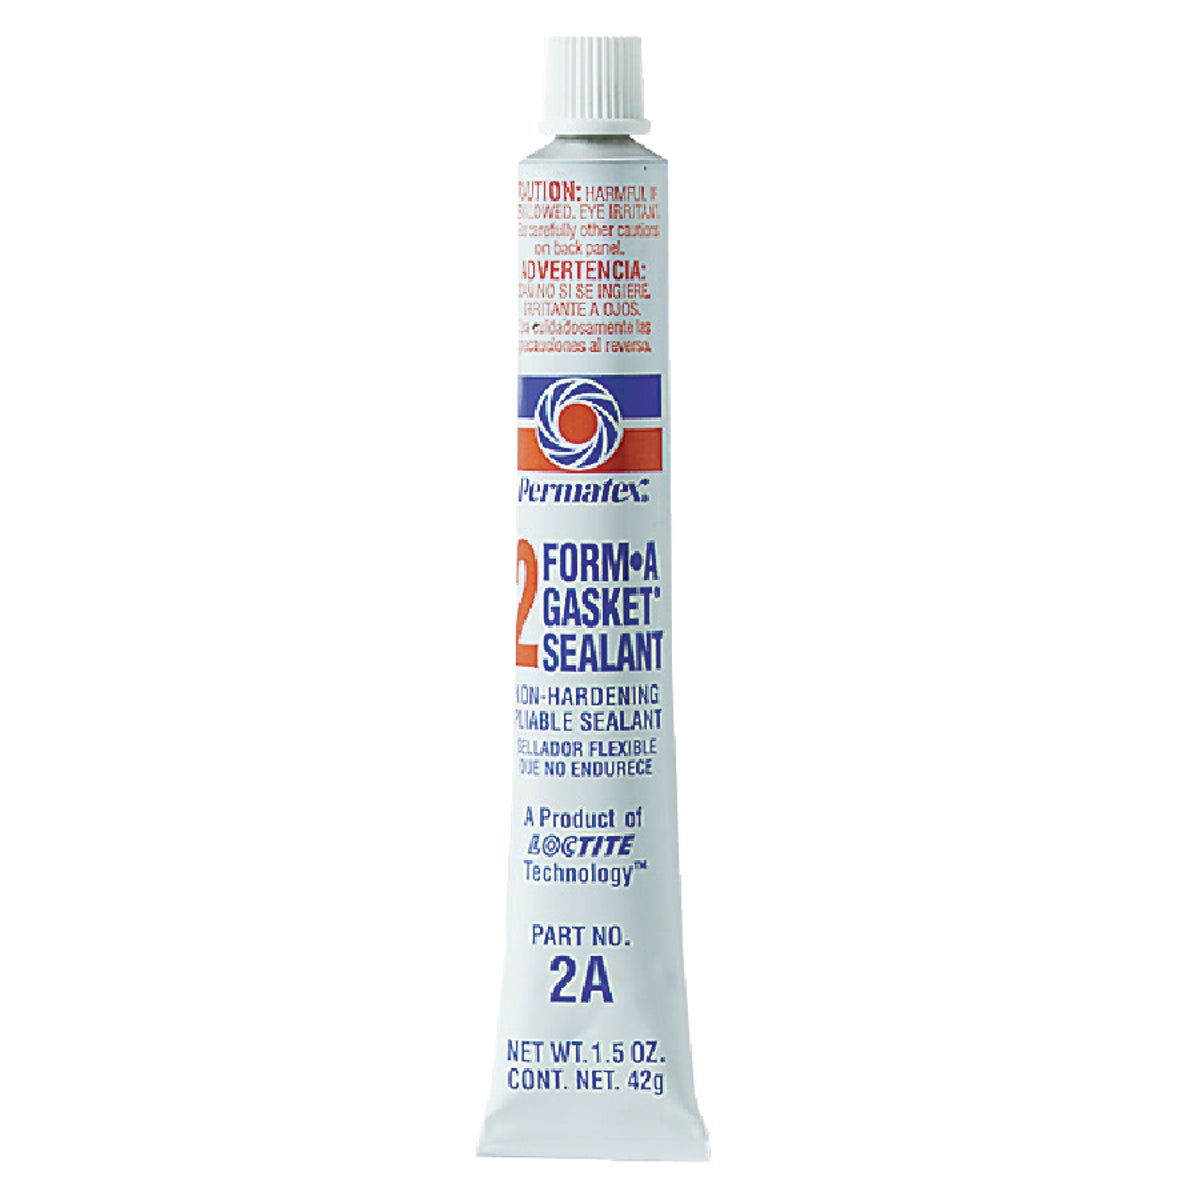 1.5OZ GASKET SEALANT - 80015 by Itw Global Brands